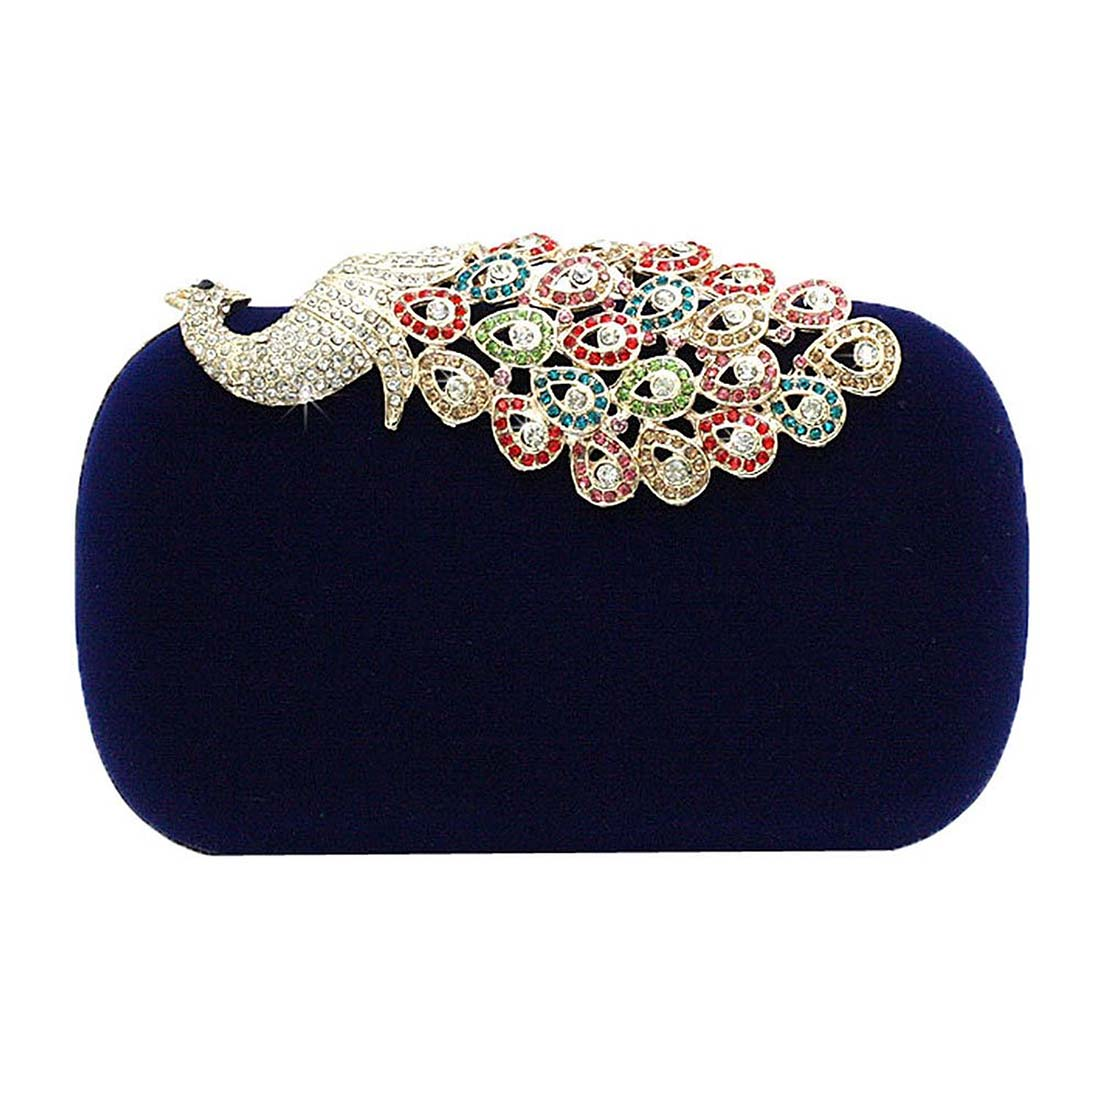 b071a226445 Hot Women Rhinestone Peacock Velvet Party Clutch Evening Bags